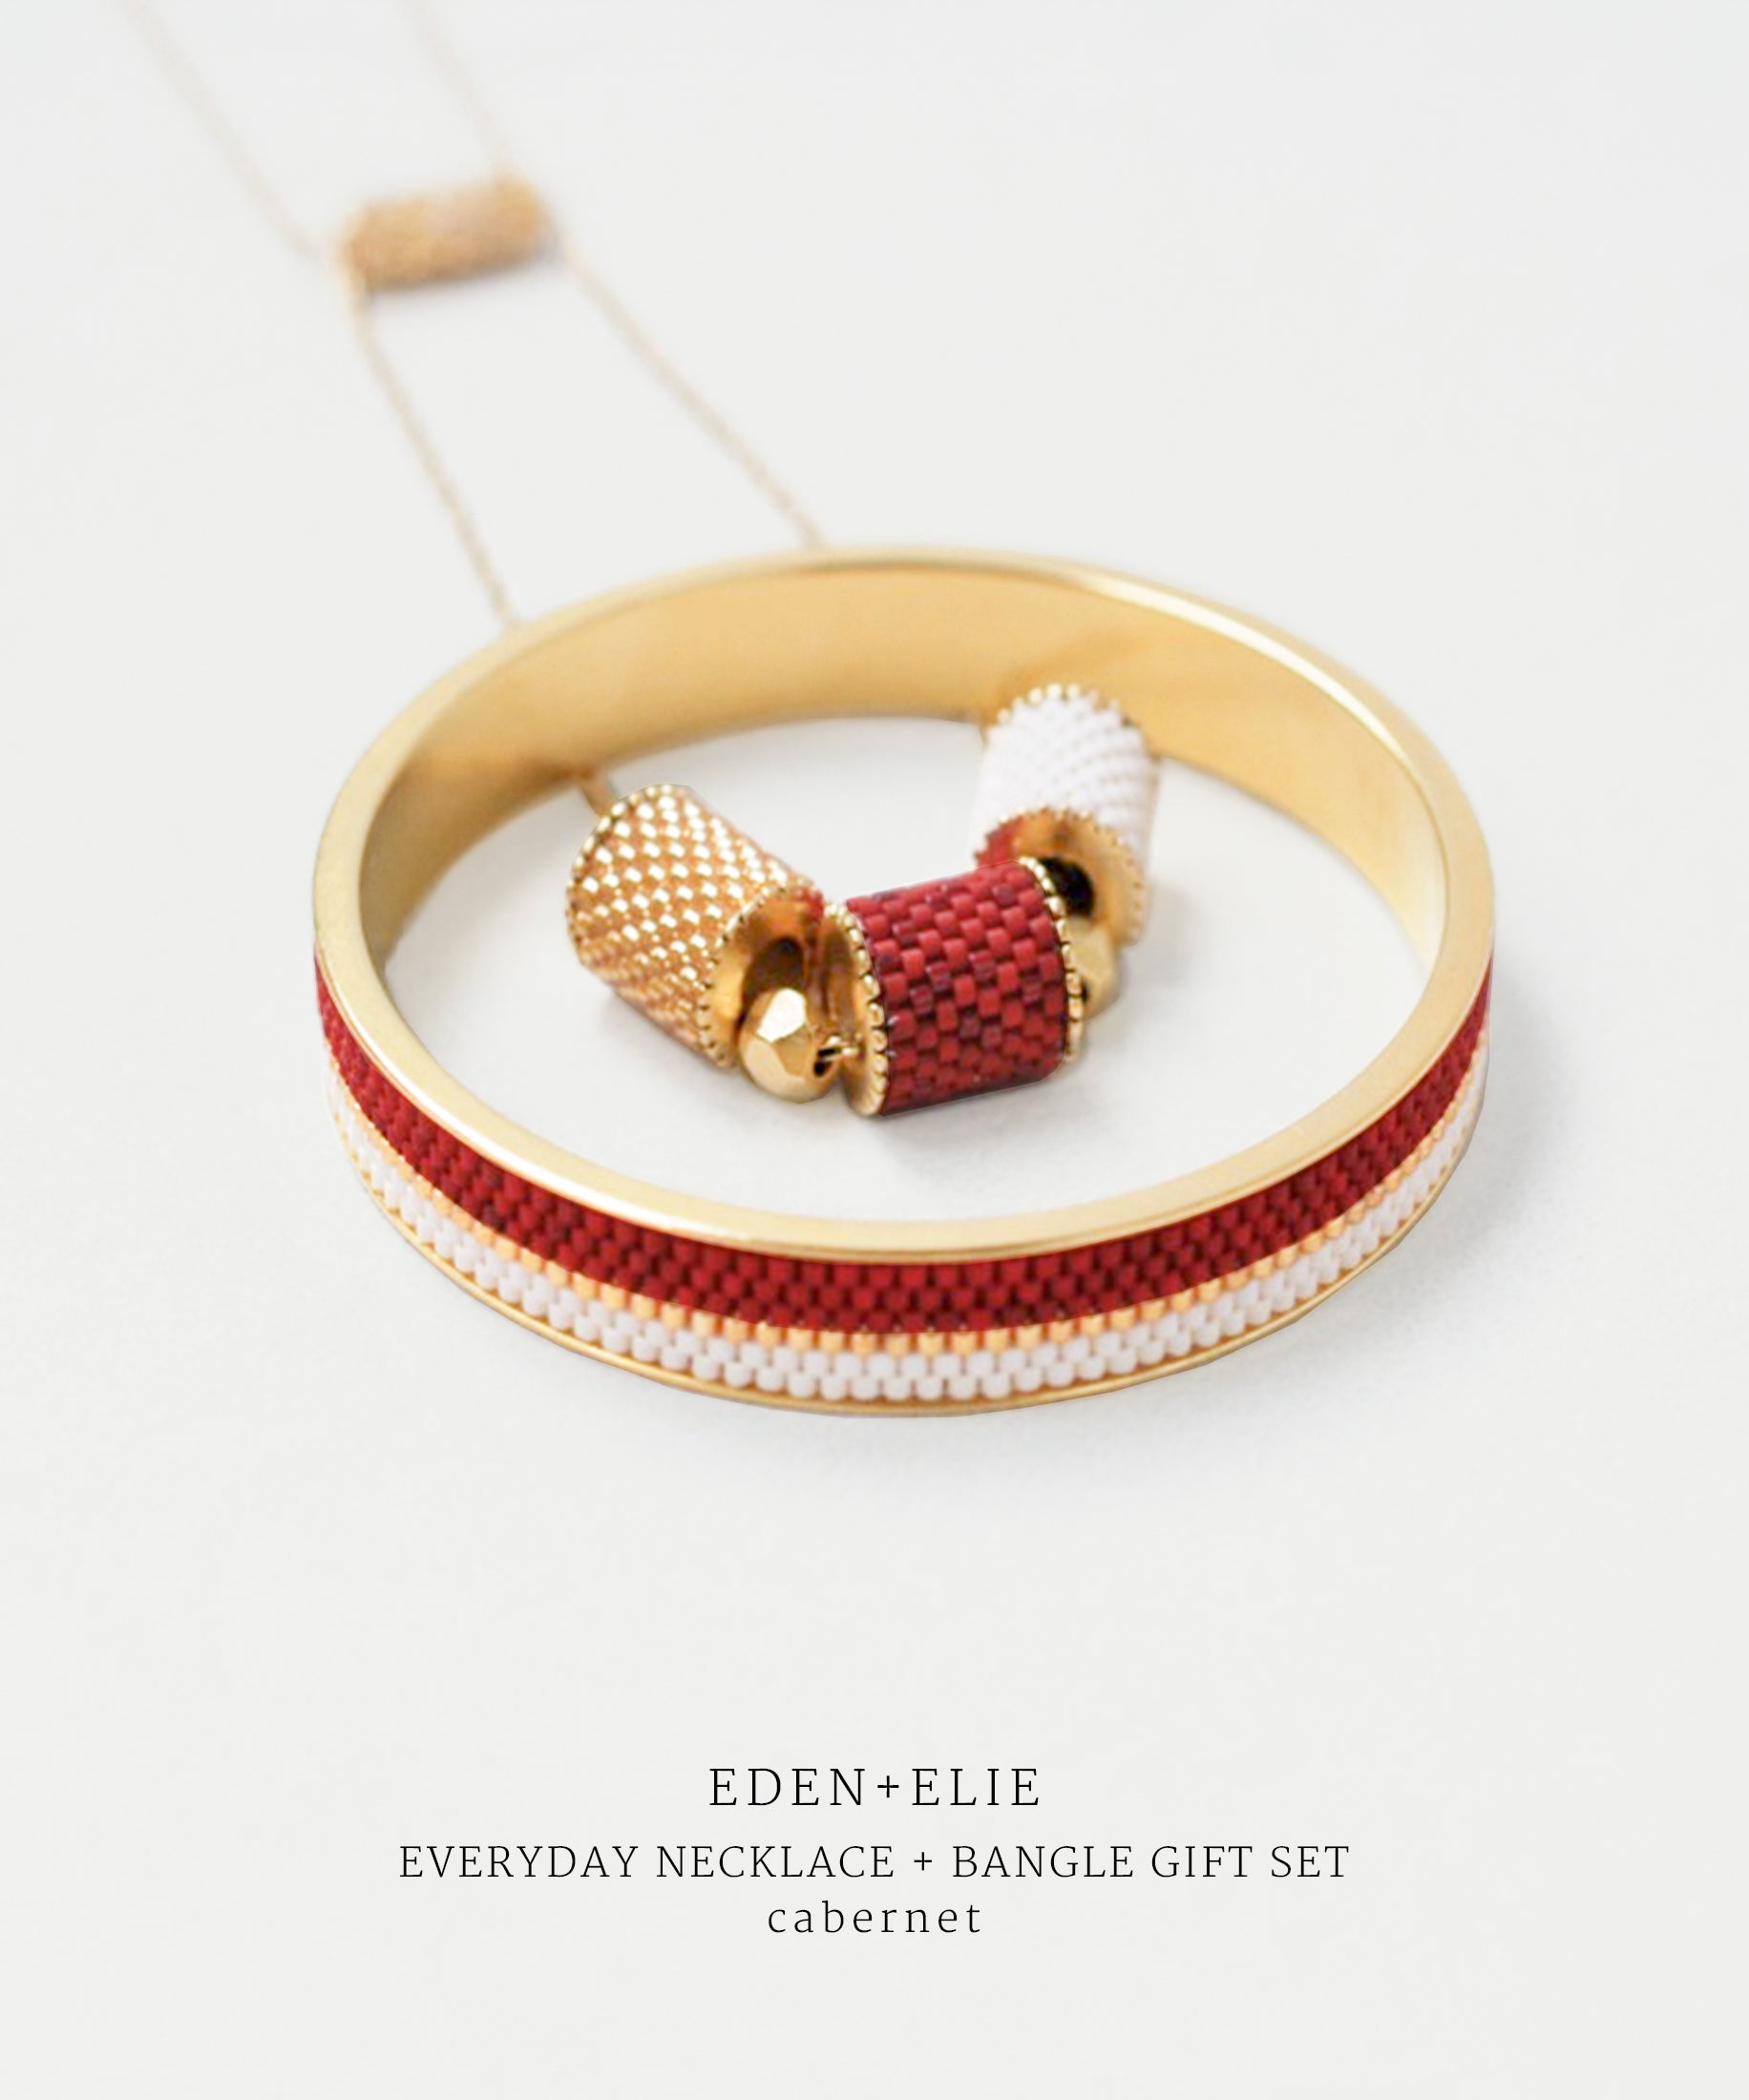 EDEN + ELIE Everyday adjustable length necklace + bangle set - cabernet red